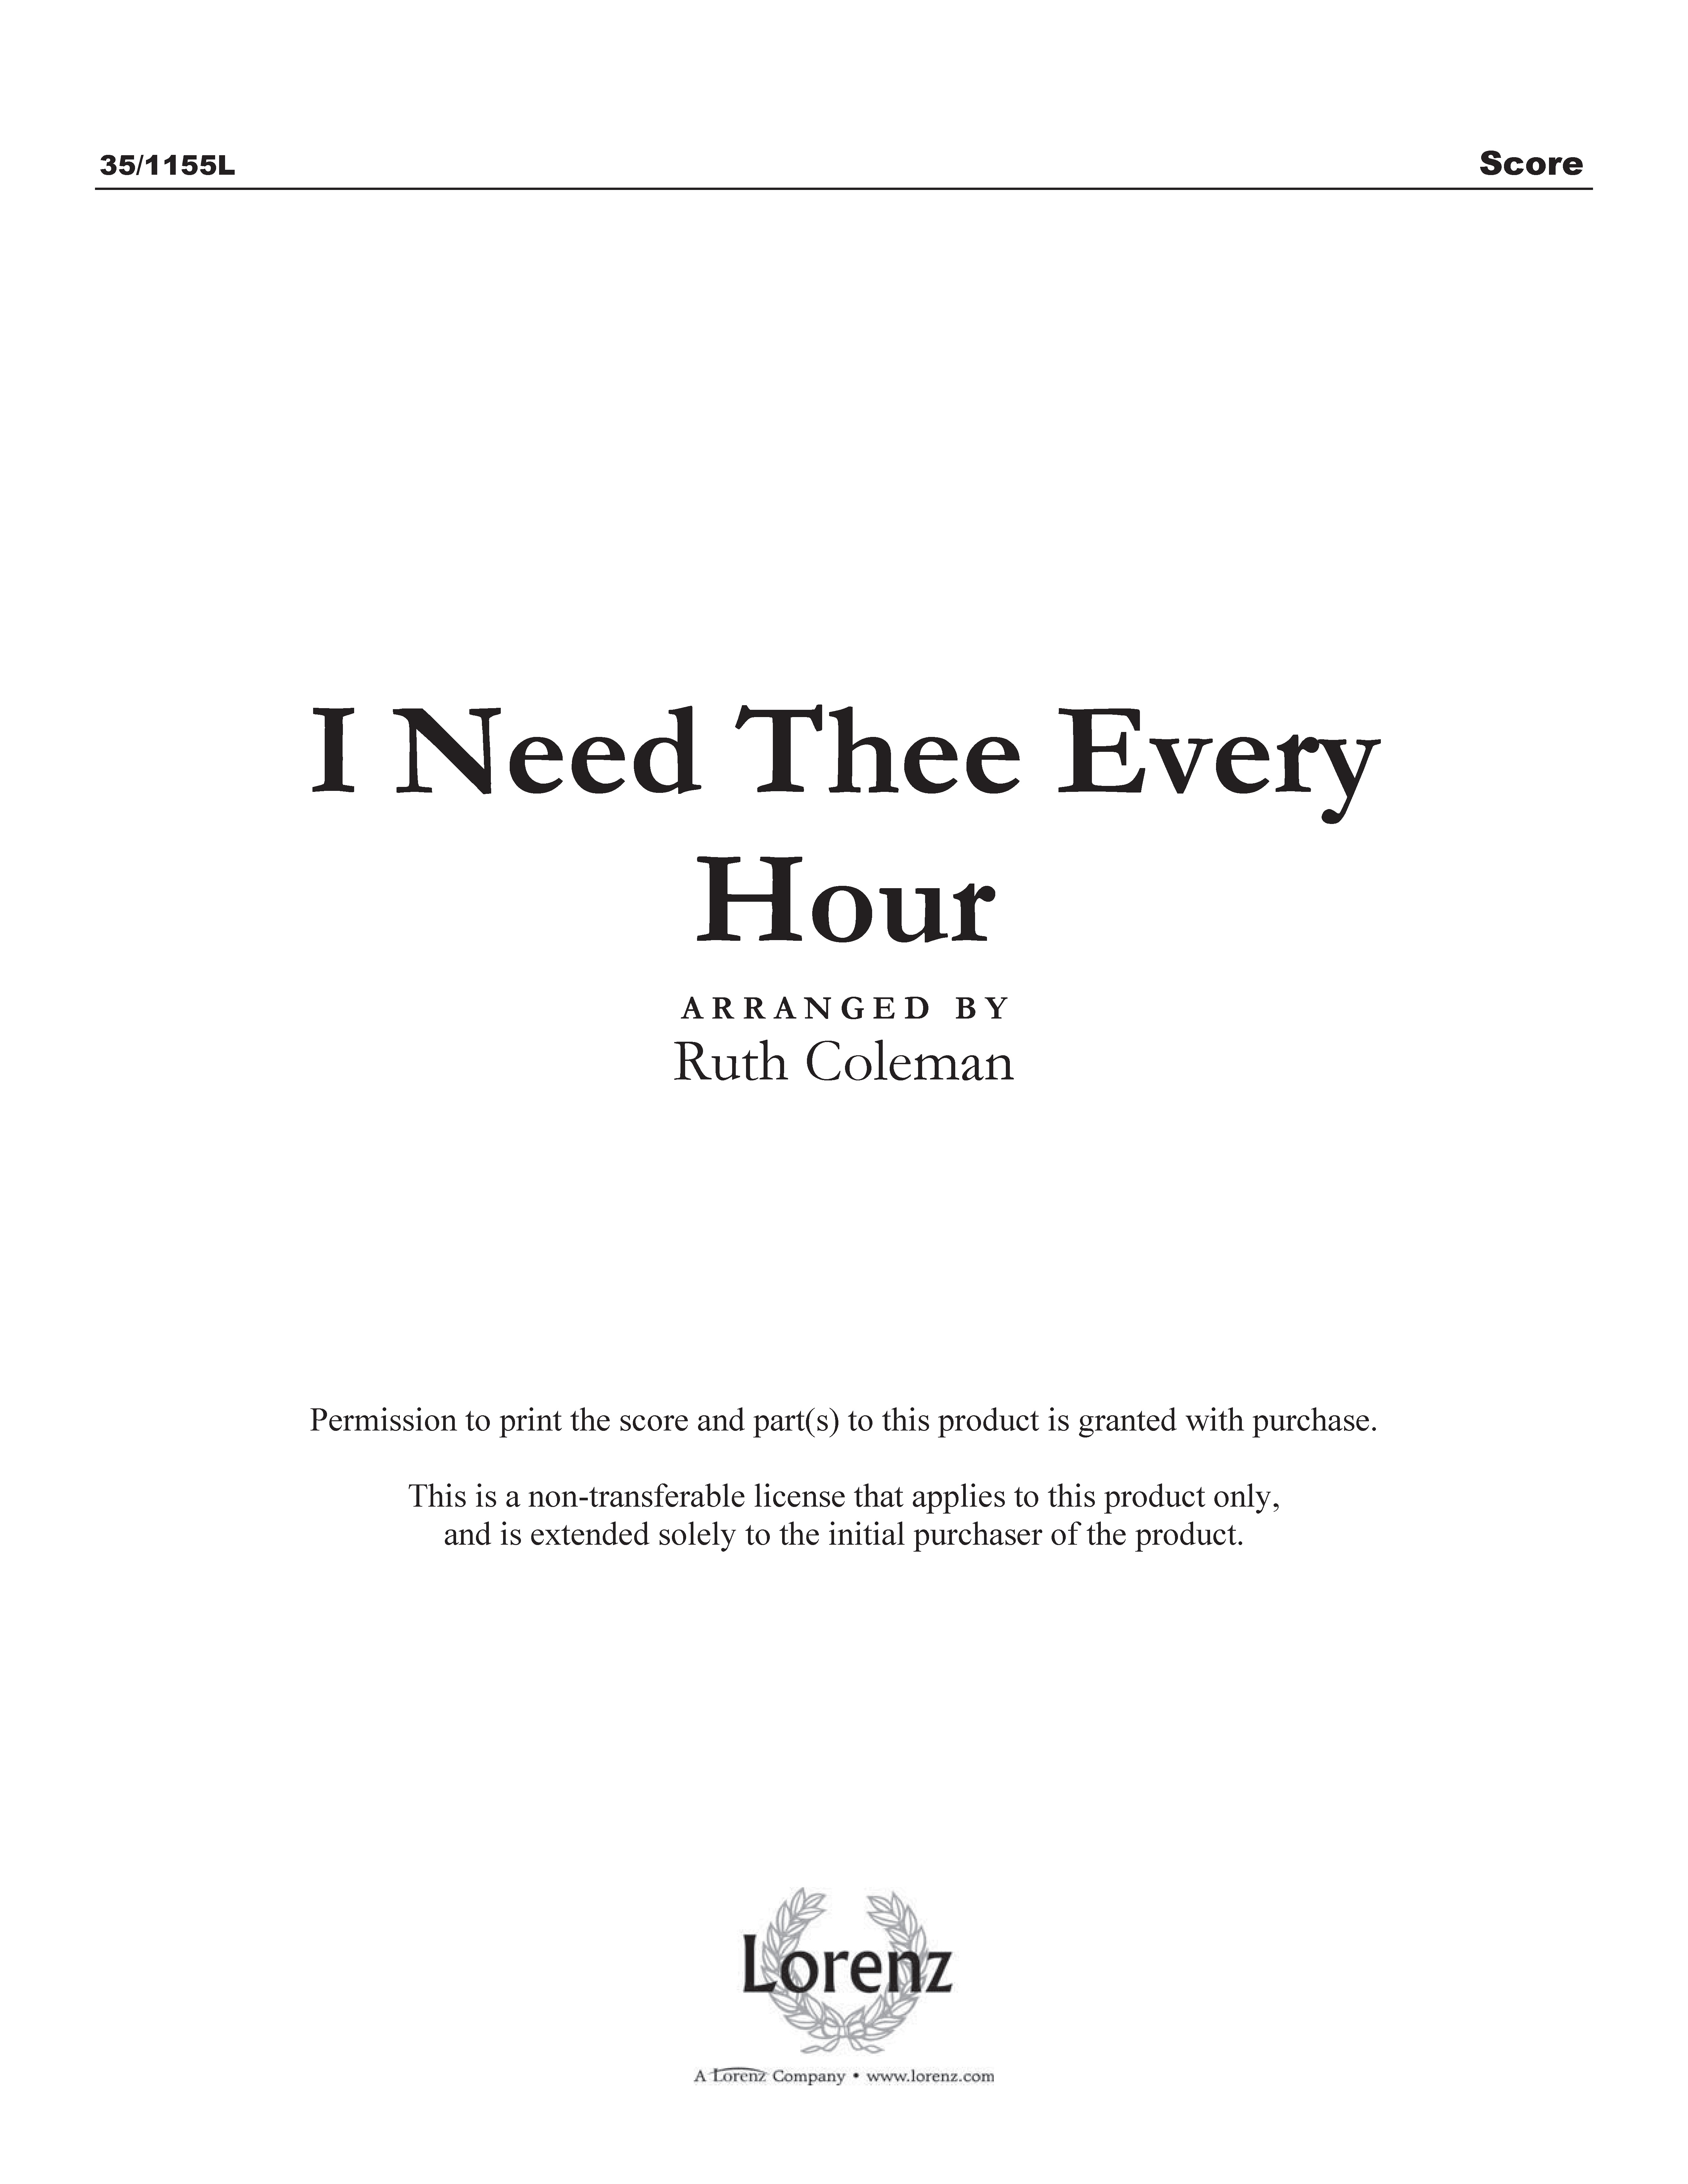 I Need Thee Every Hour (Digital Delivery)